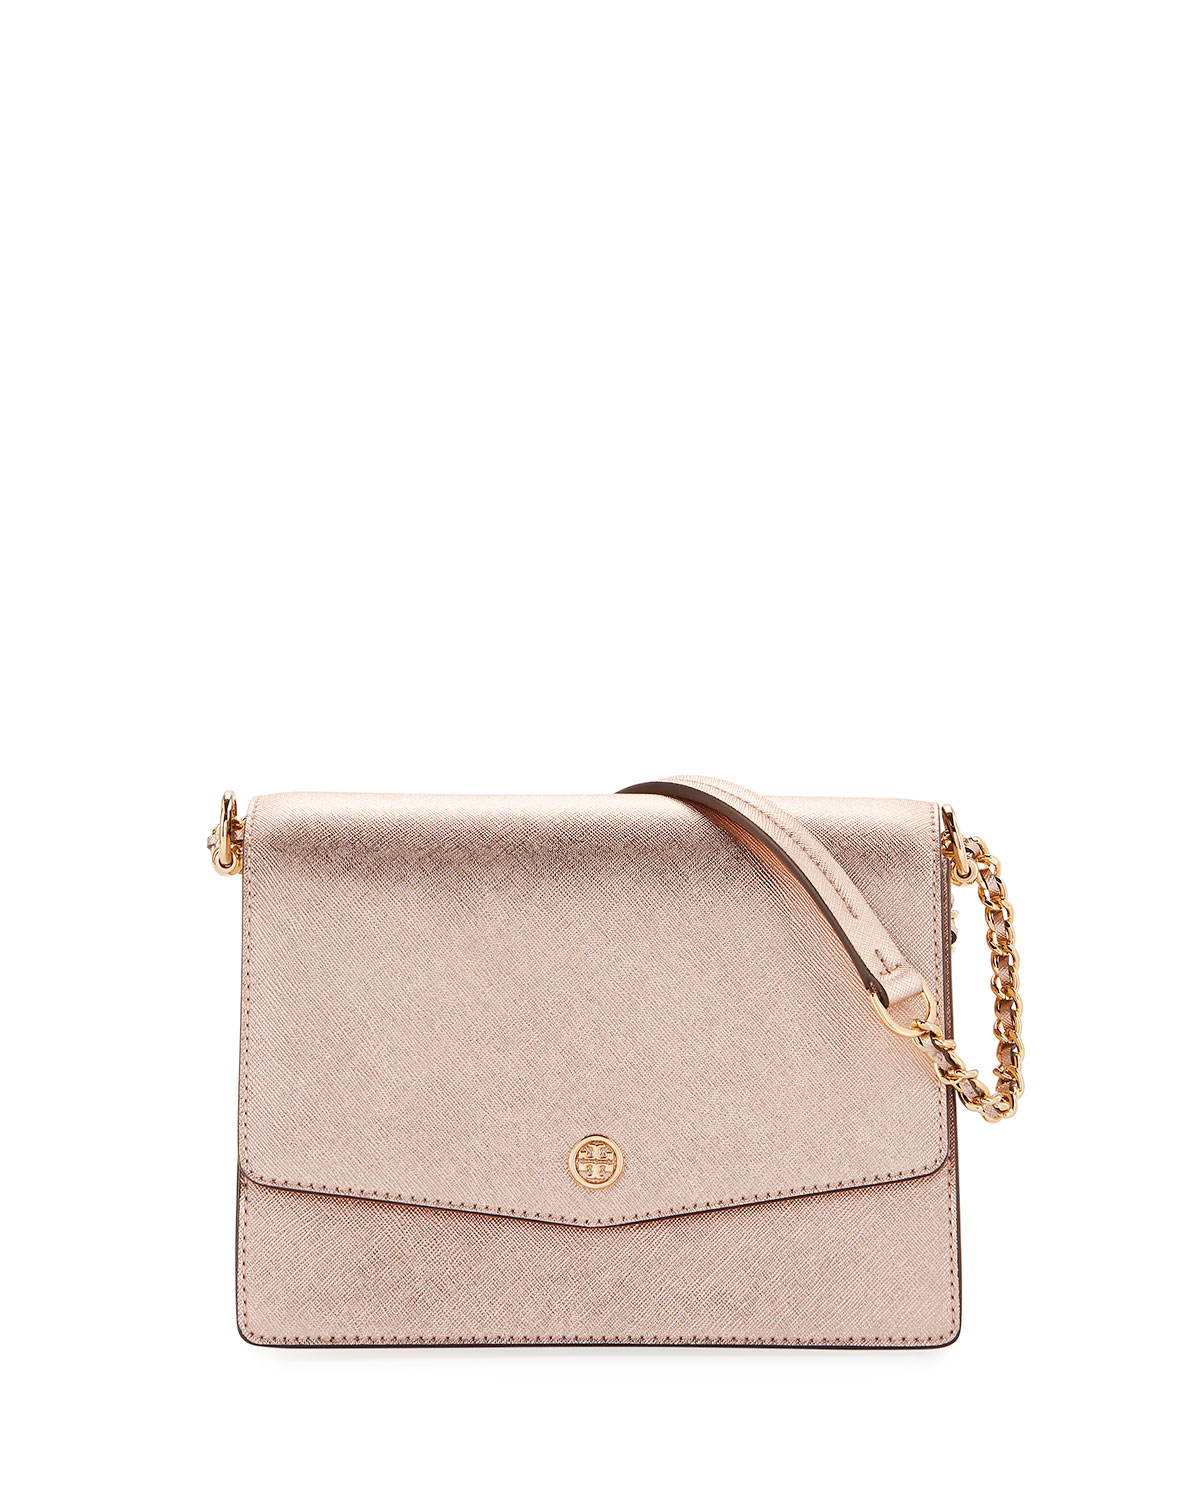 24018a4eb1e Tory Burch Robinson Convertible Metallic Leather Shoulder Bag - Pink In  Light Rose Gold